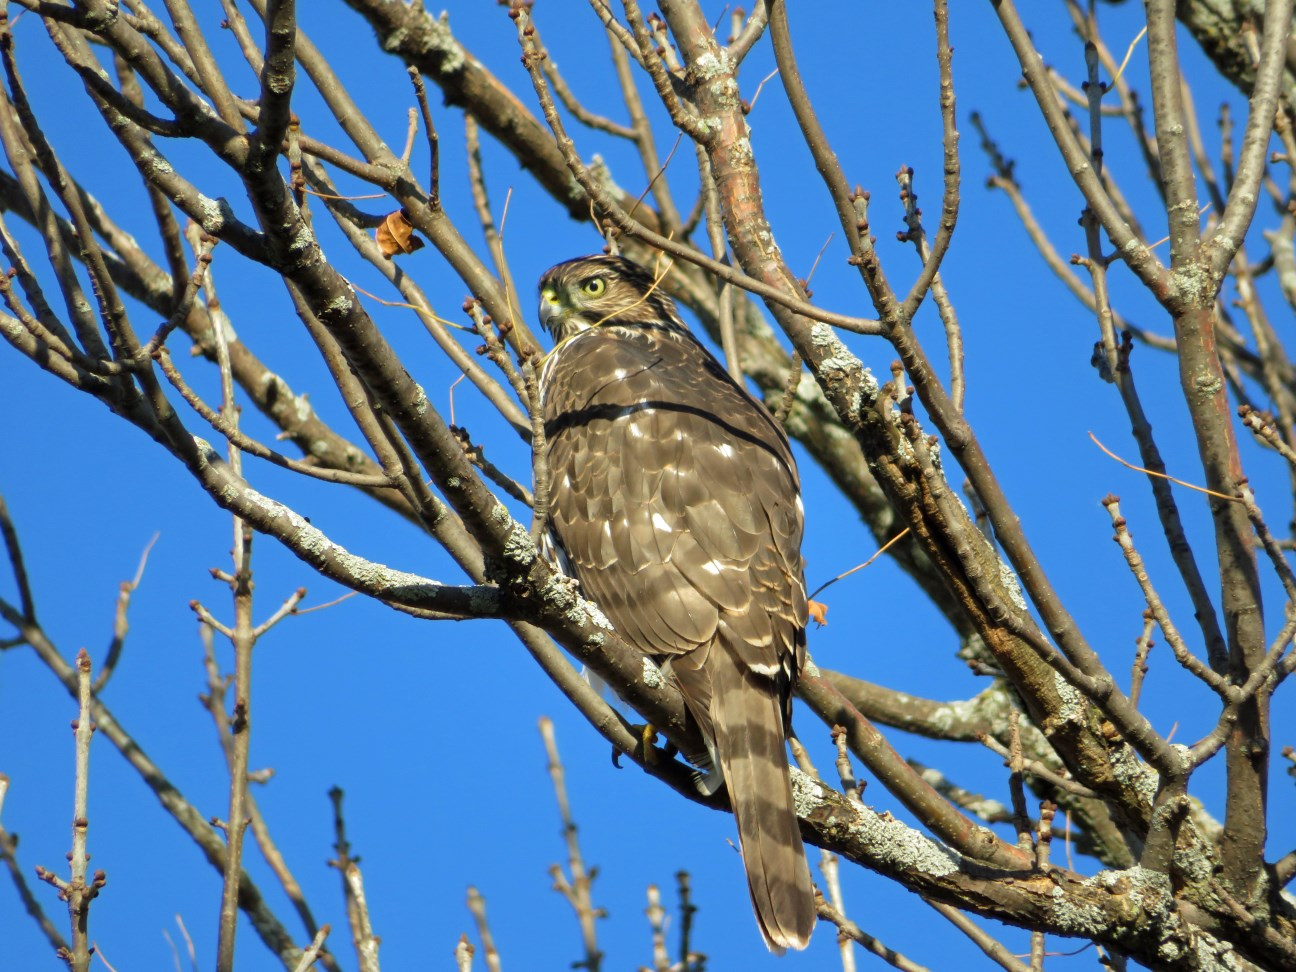 A first-year female Cooper's hawk at the Kampen Road residence, photo credits to Maddie Dumas